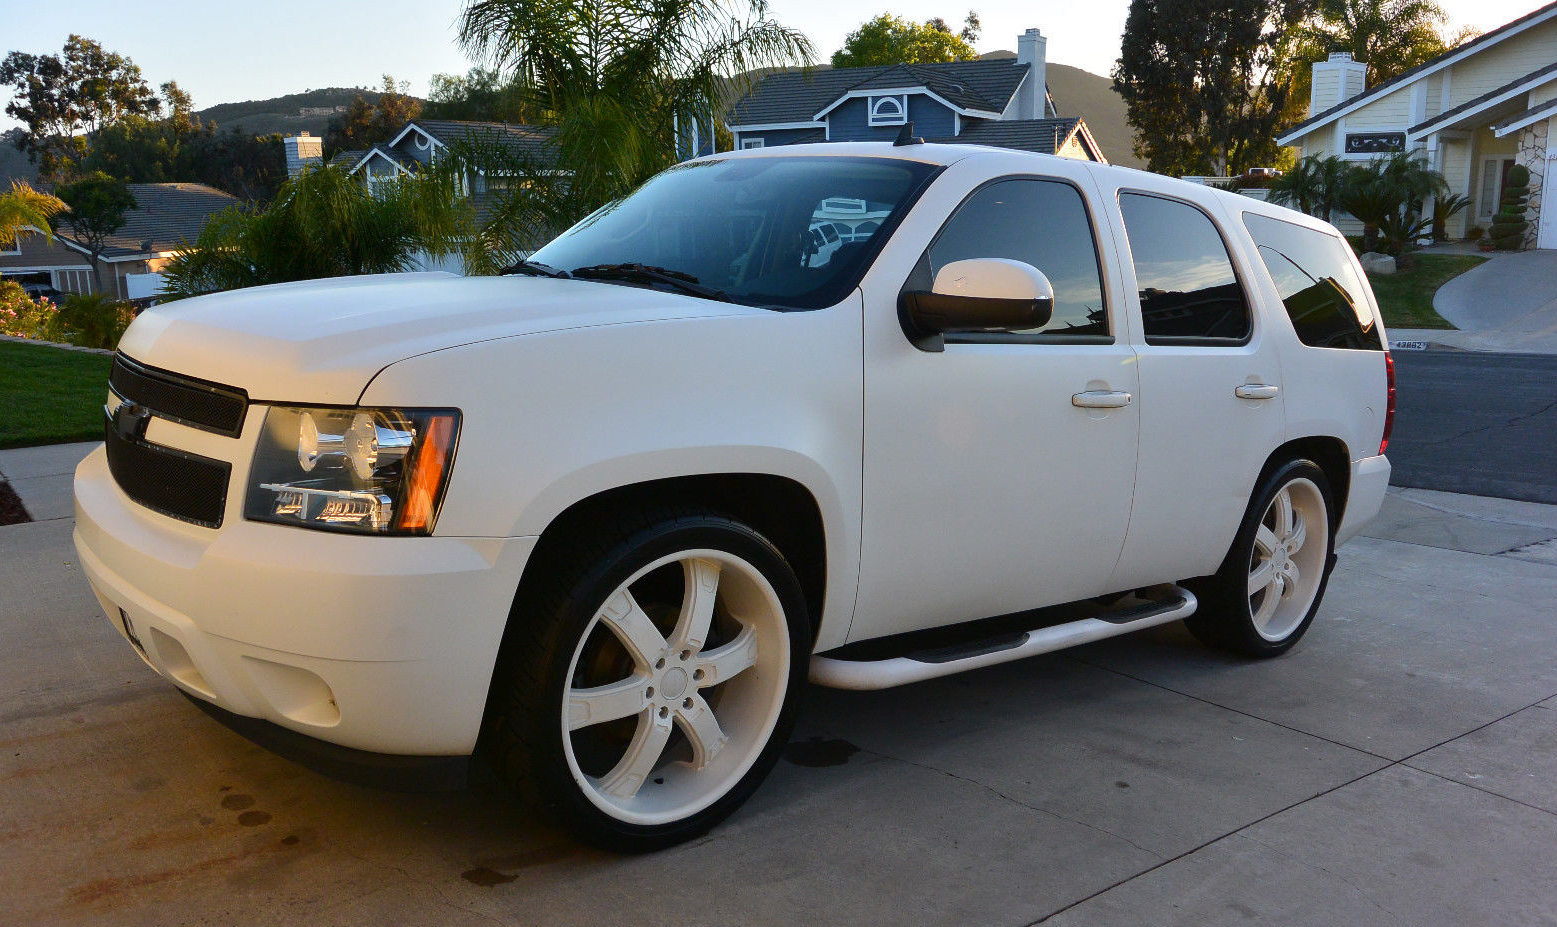 2014 Chevy Tahoe For Sale >> Rob Dyrdek S Old Chevrolet Tahoe For Sale On Ebay